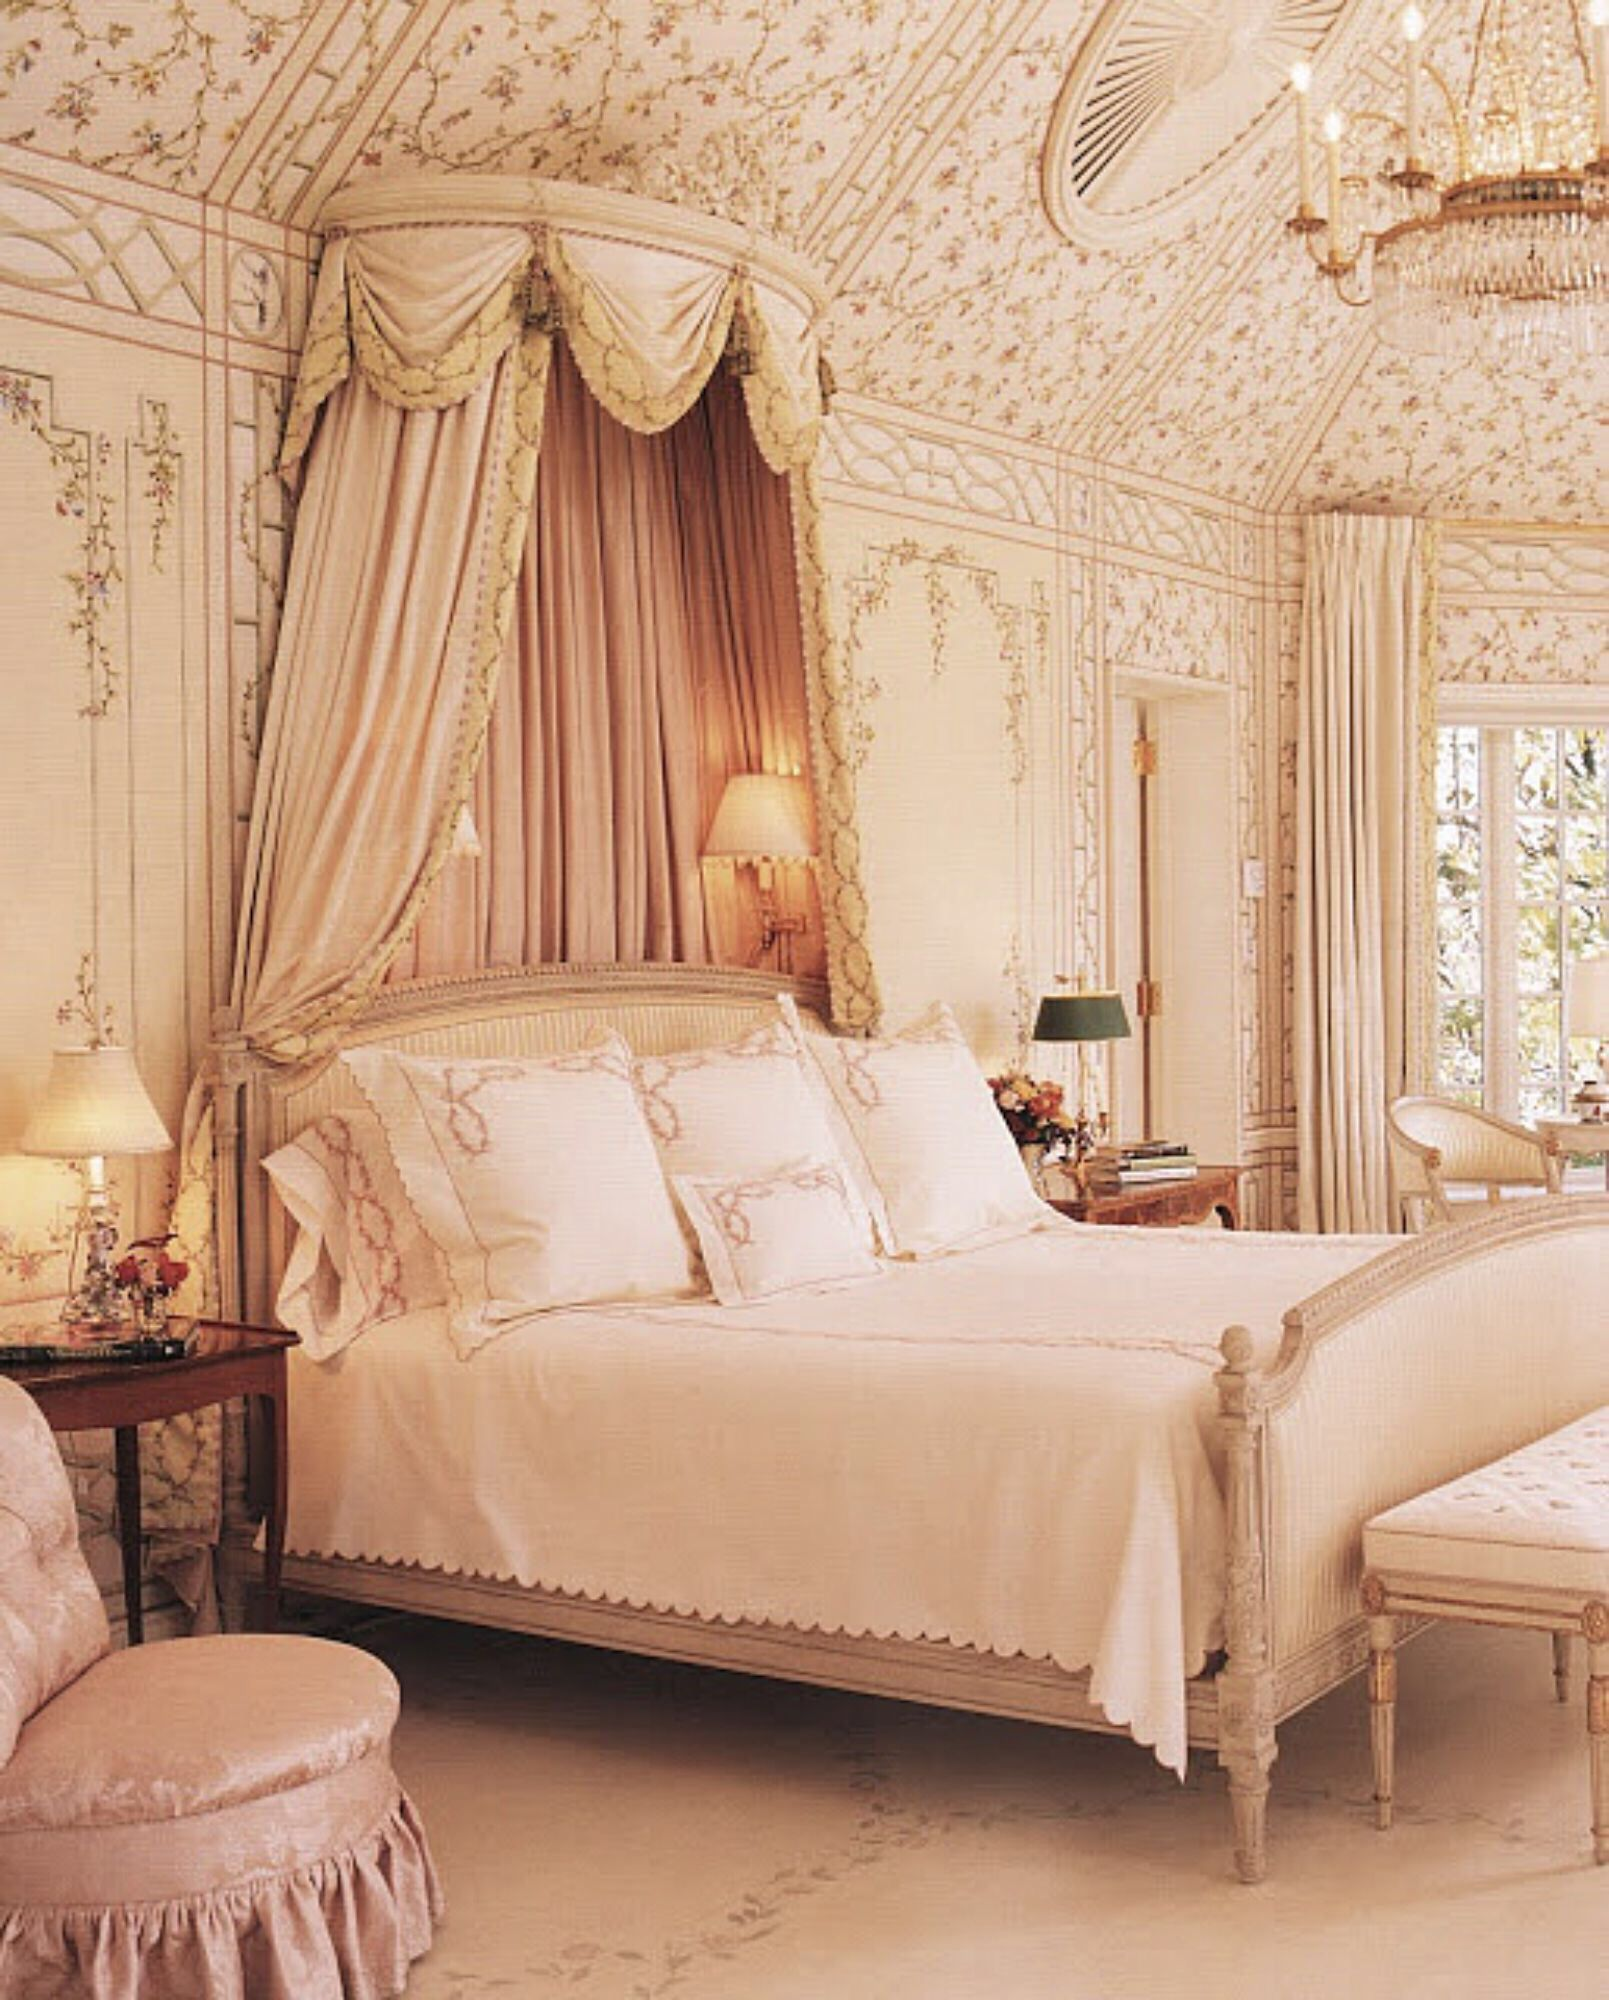 Pink Bedroom Ideas That Can Be Pretty And Peaceful Or: Blush Pink Bedroom, Canopy And Formal French Styling